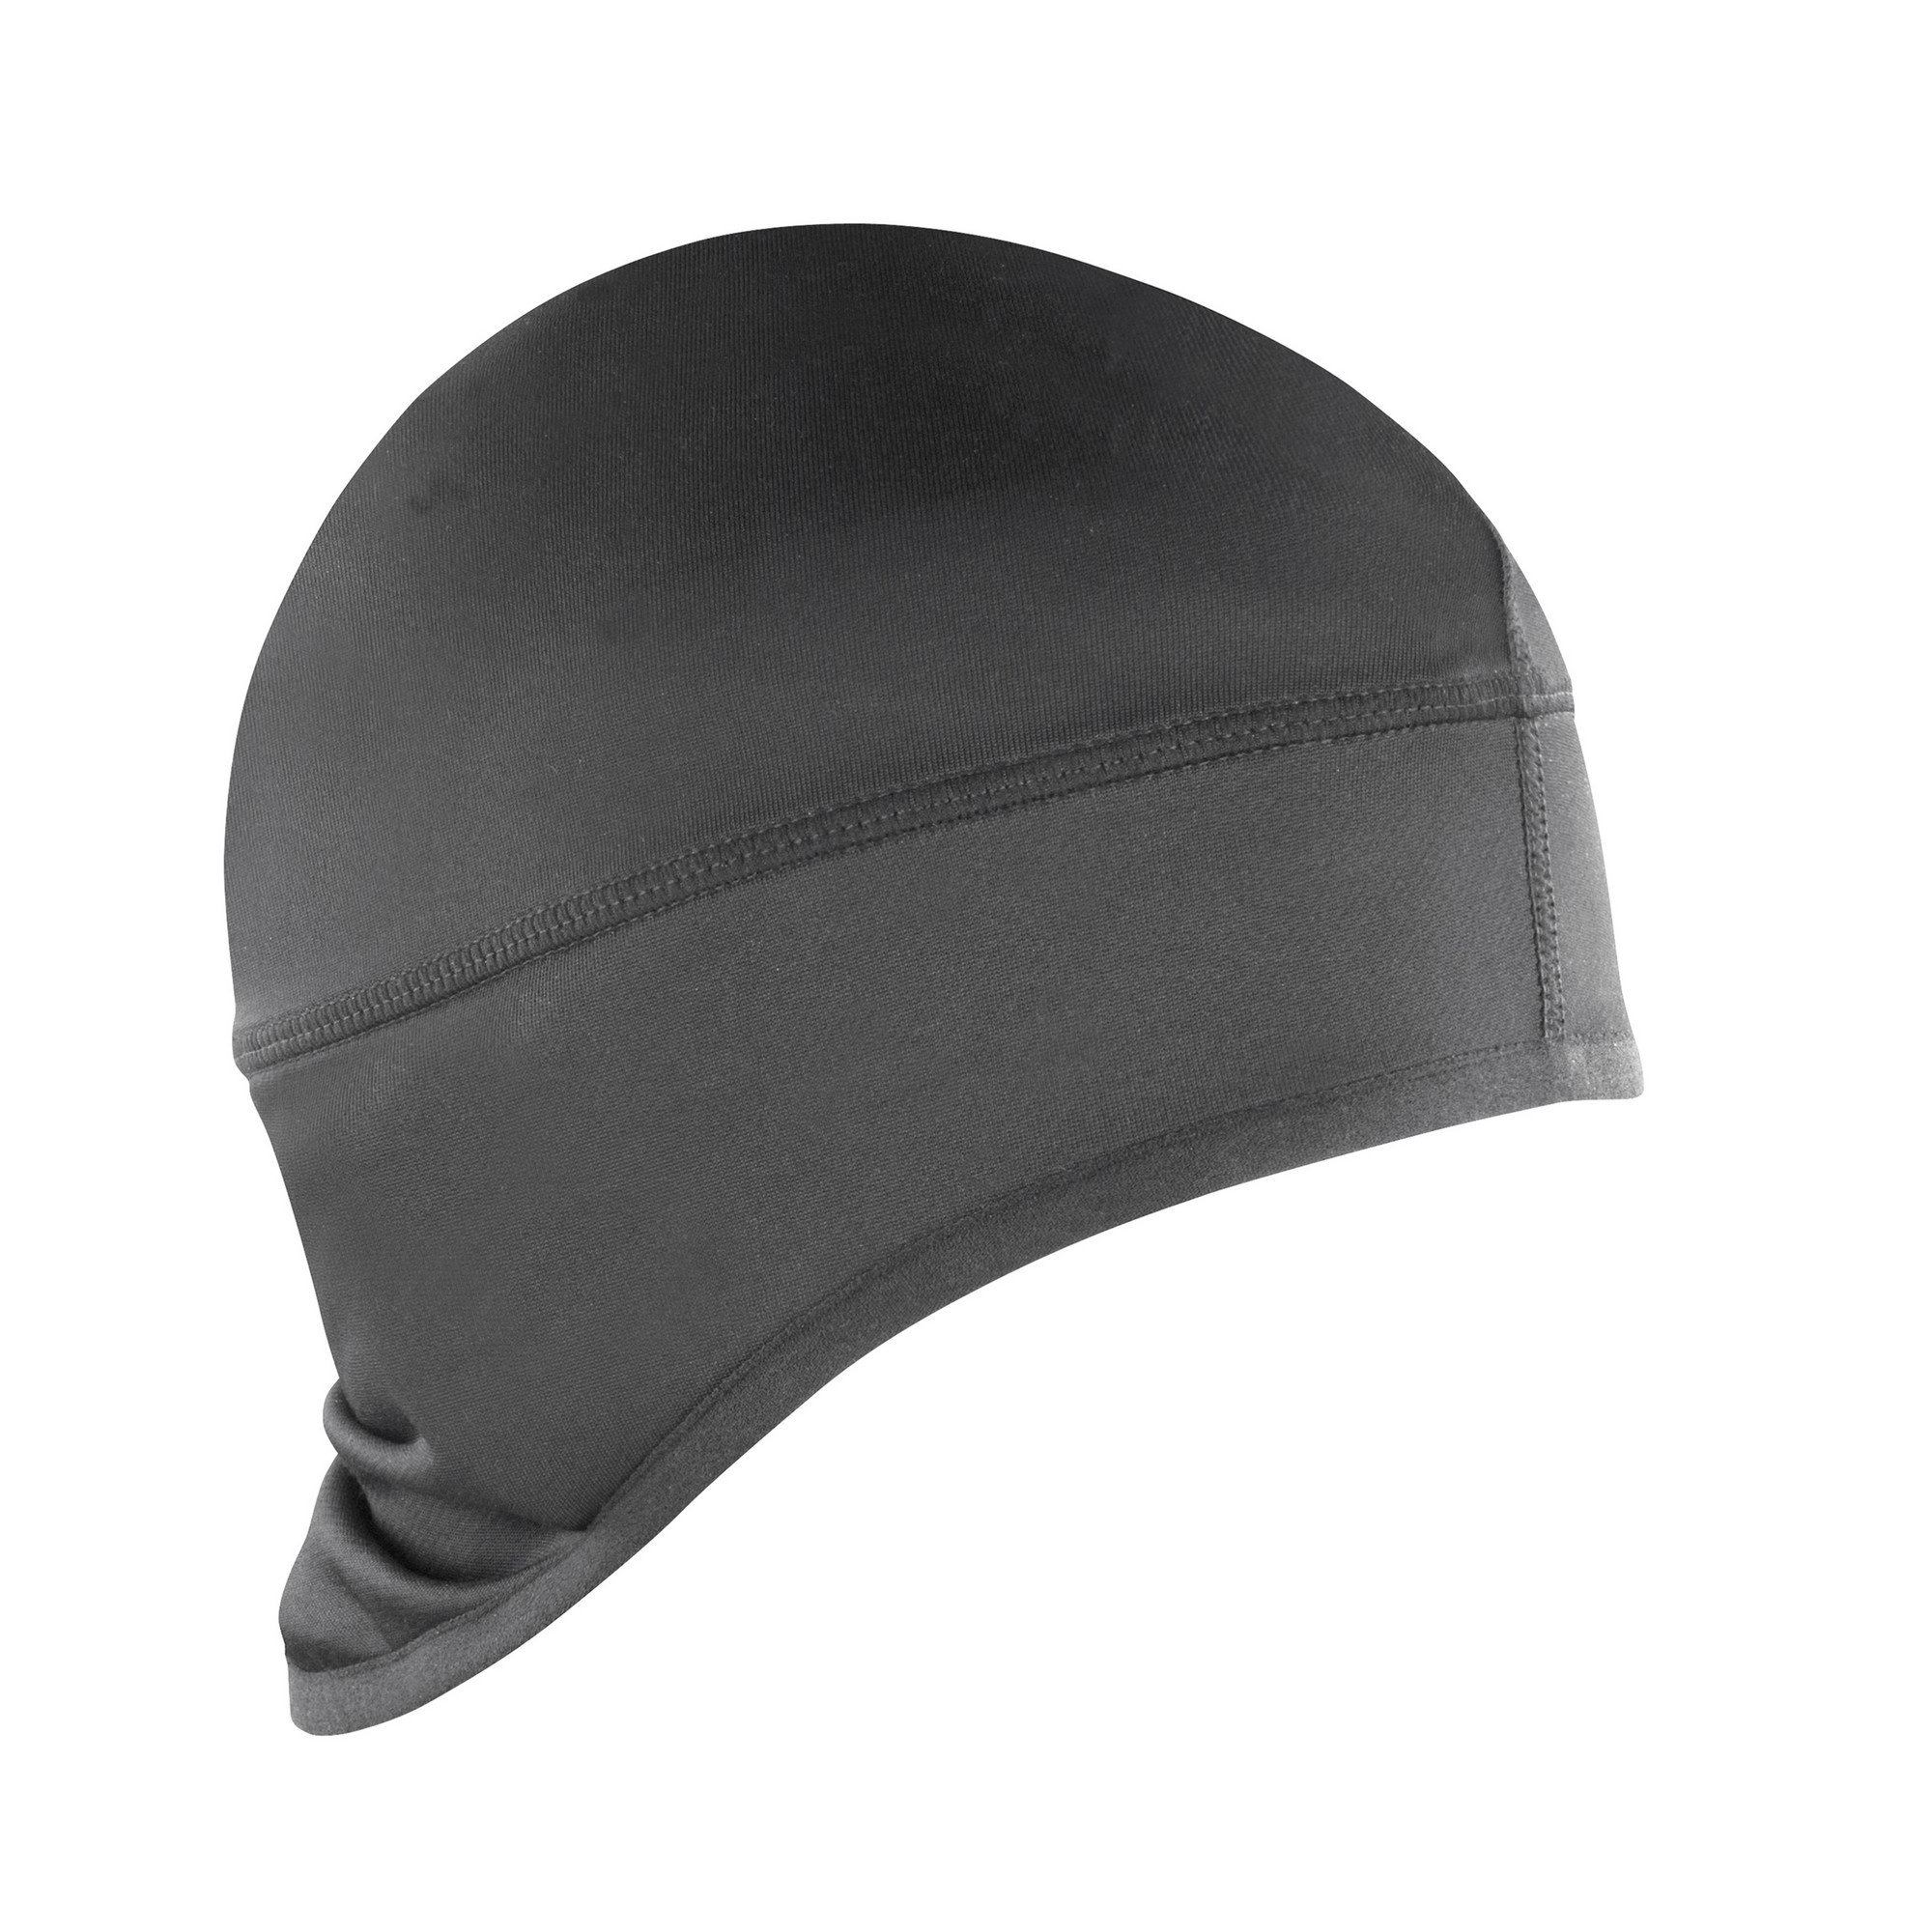 Spiro Winter Winter Cycling Hat / Cap One Size Svart